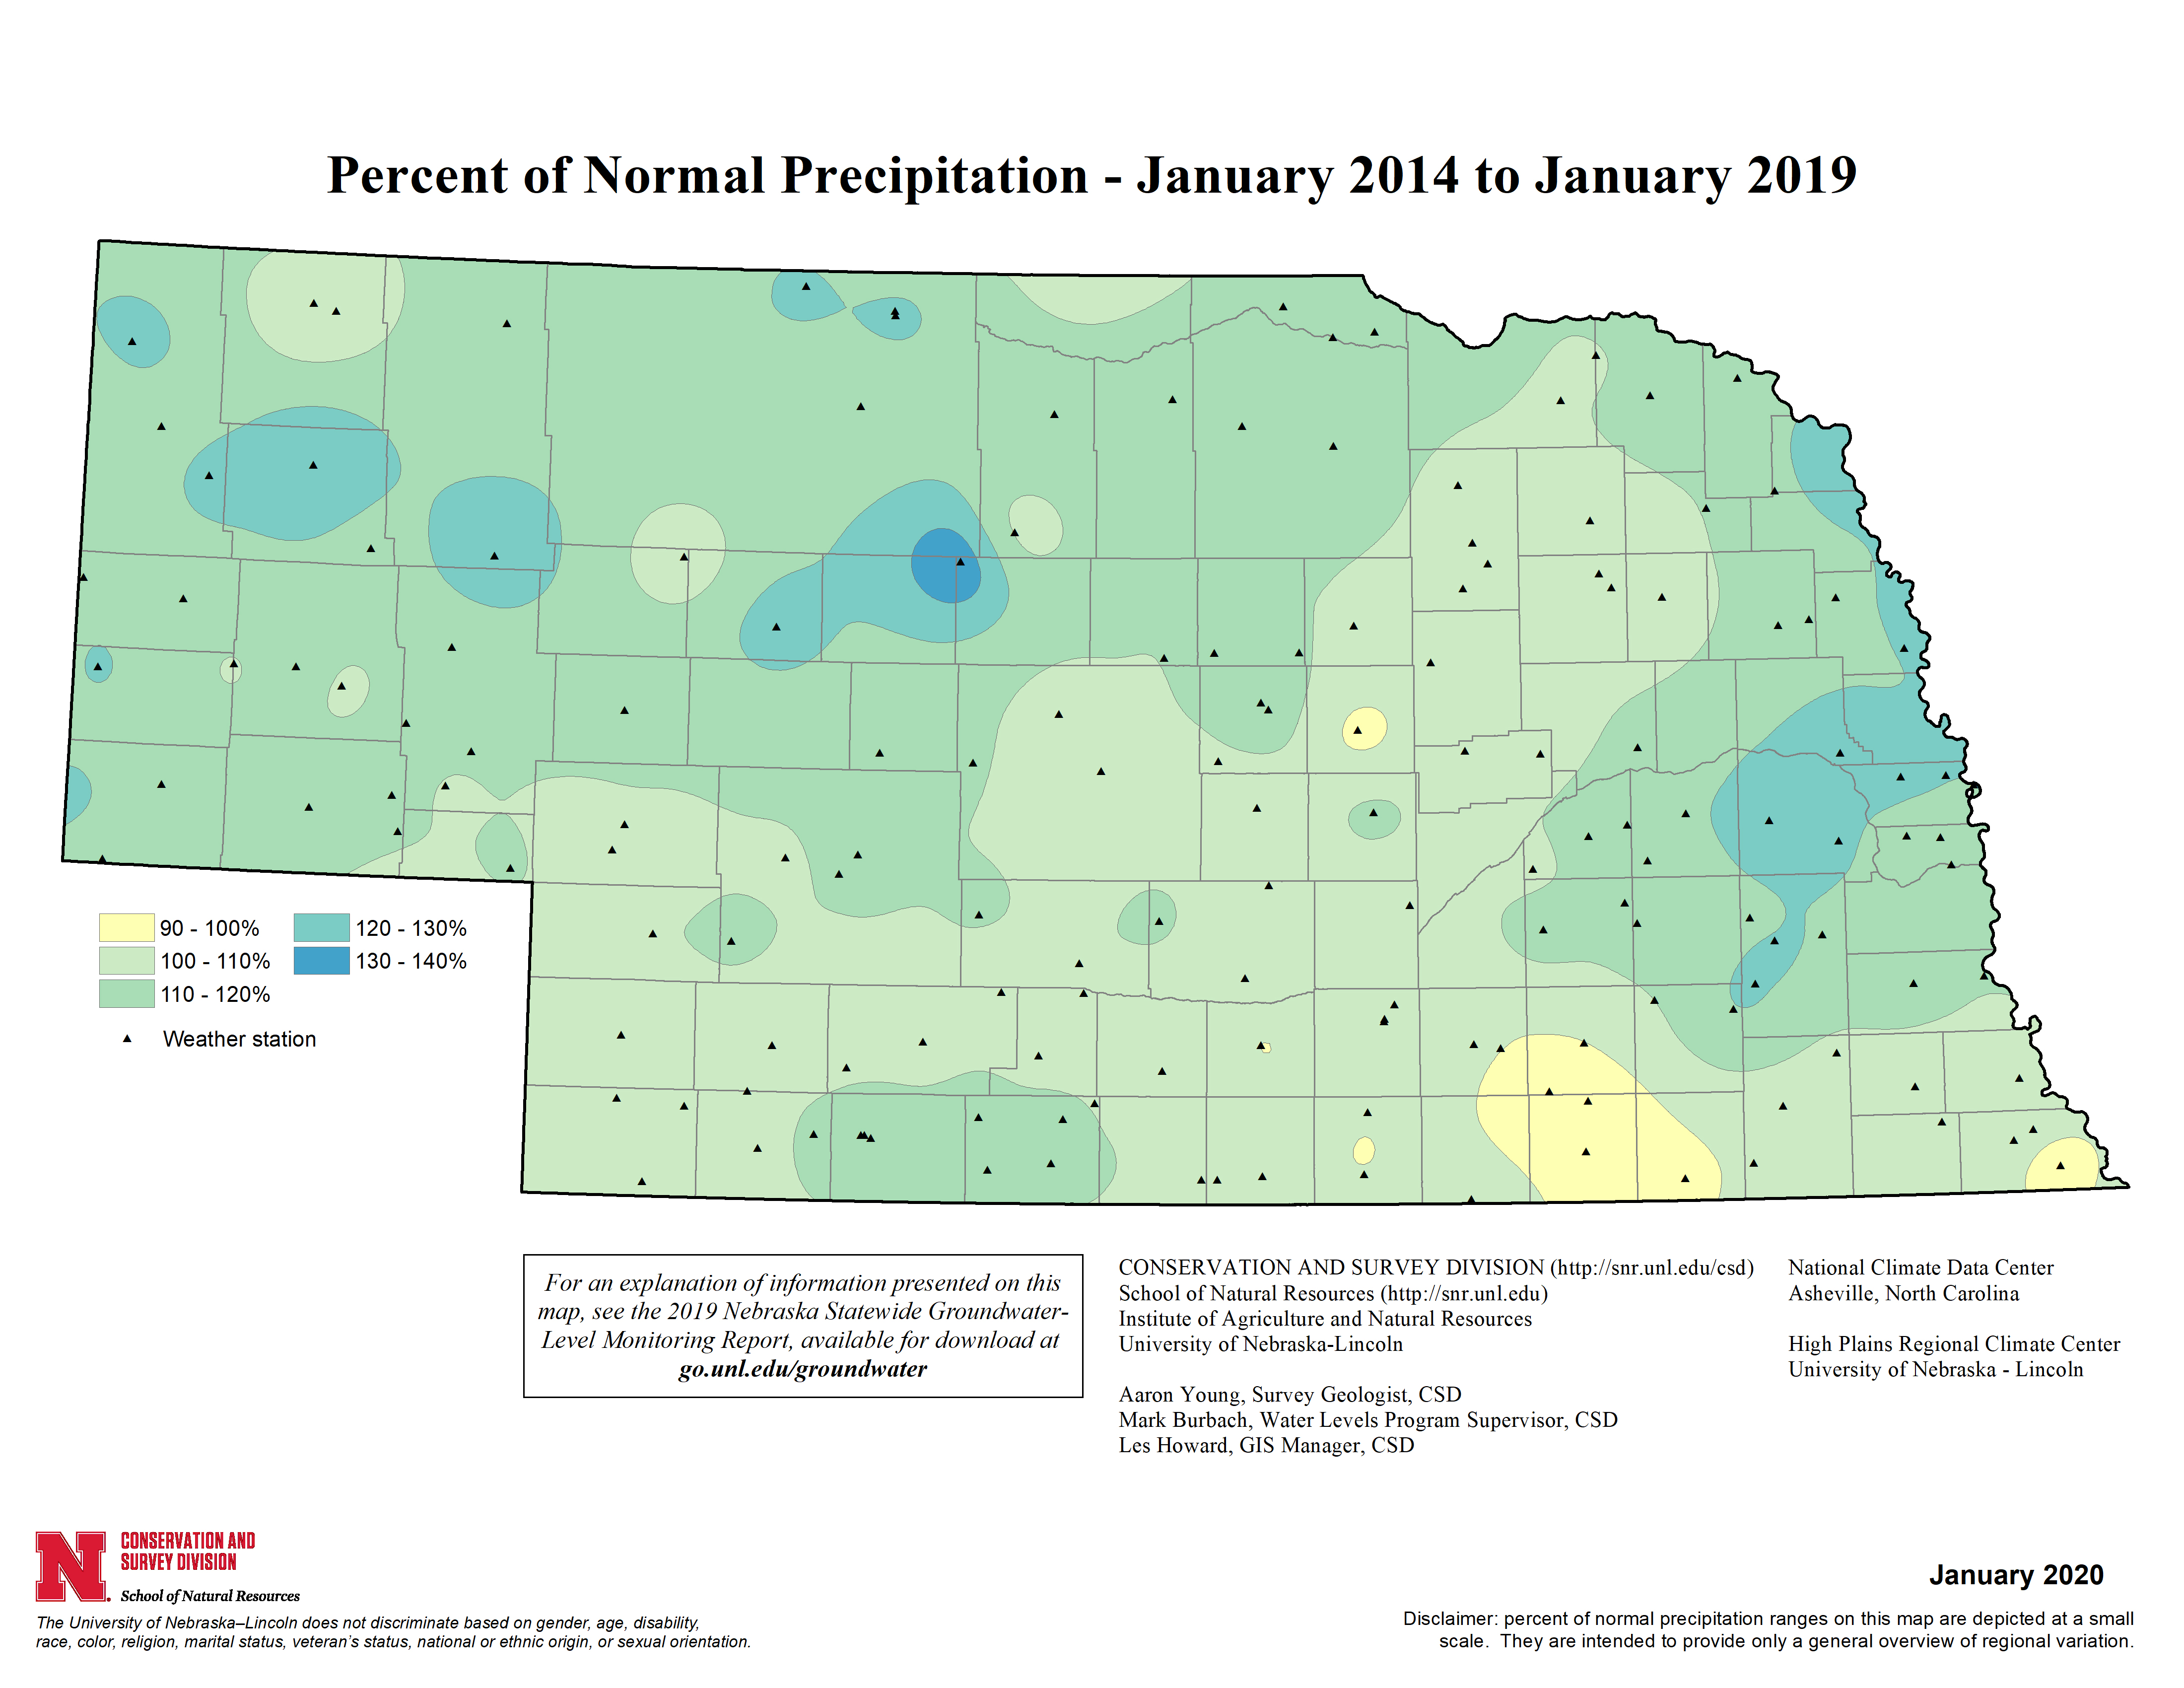 Percent of Normal Precipitation, January 2014 - January 2019